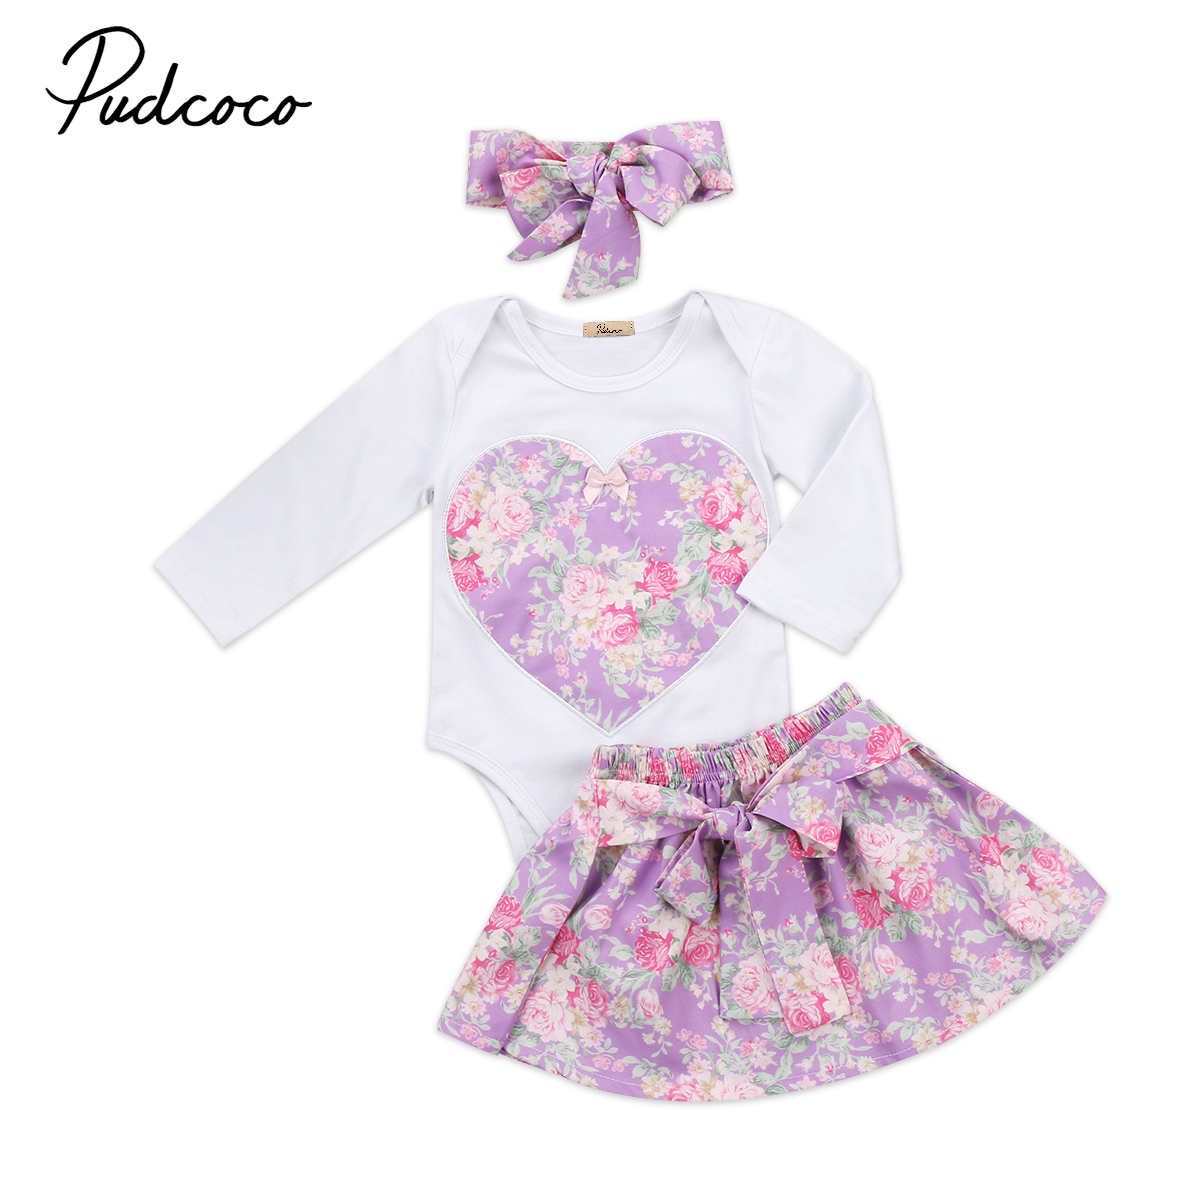 Autumn Baby Girl 3pcs Floral Outfits Clothes Newborn Baby Girls Long Sleeve Romper Jumpsuit Purple Skirts Outfit Clothing Sets